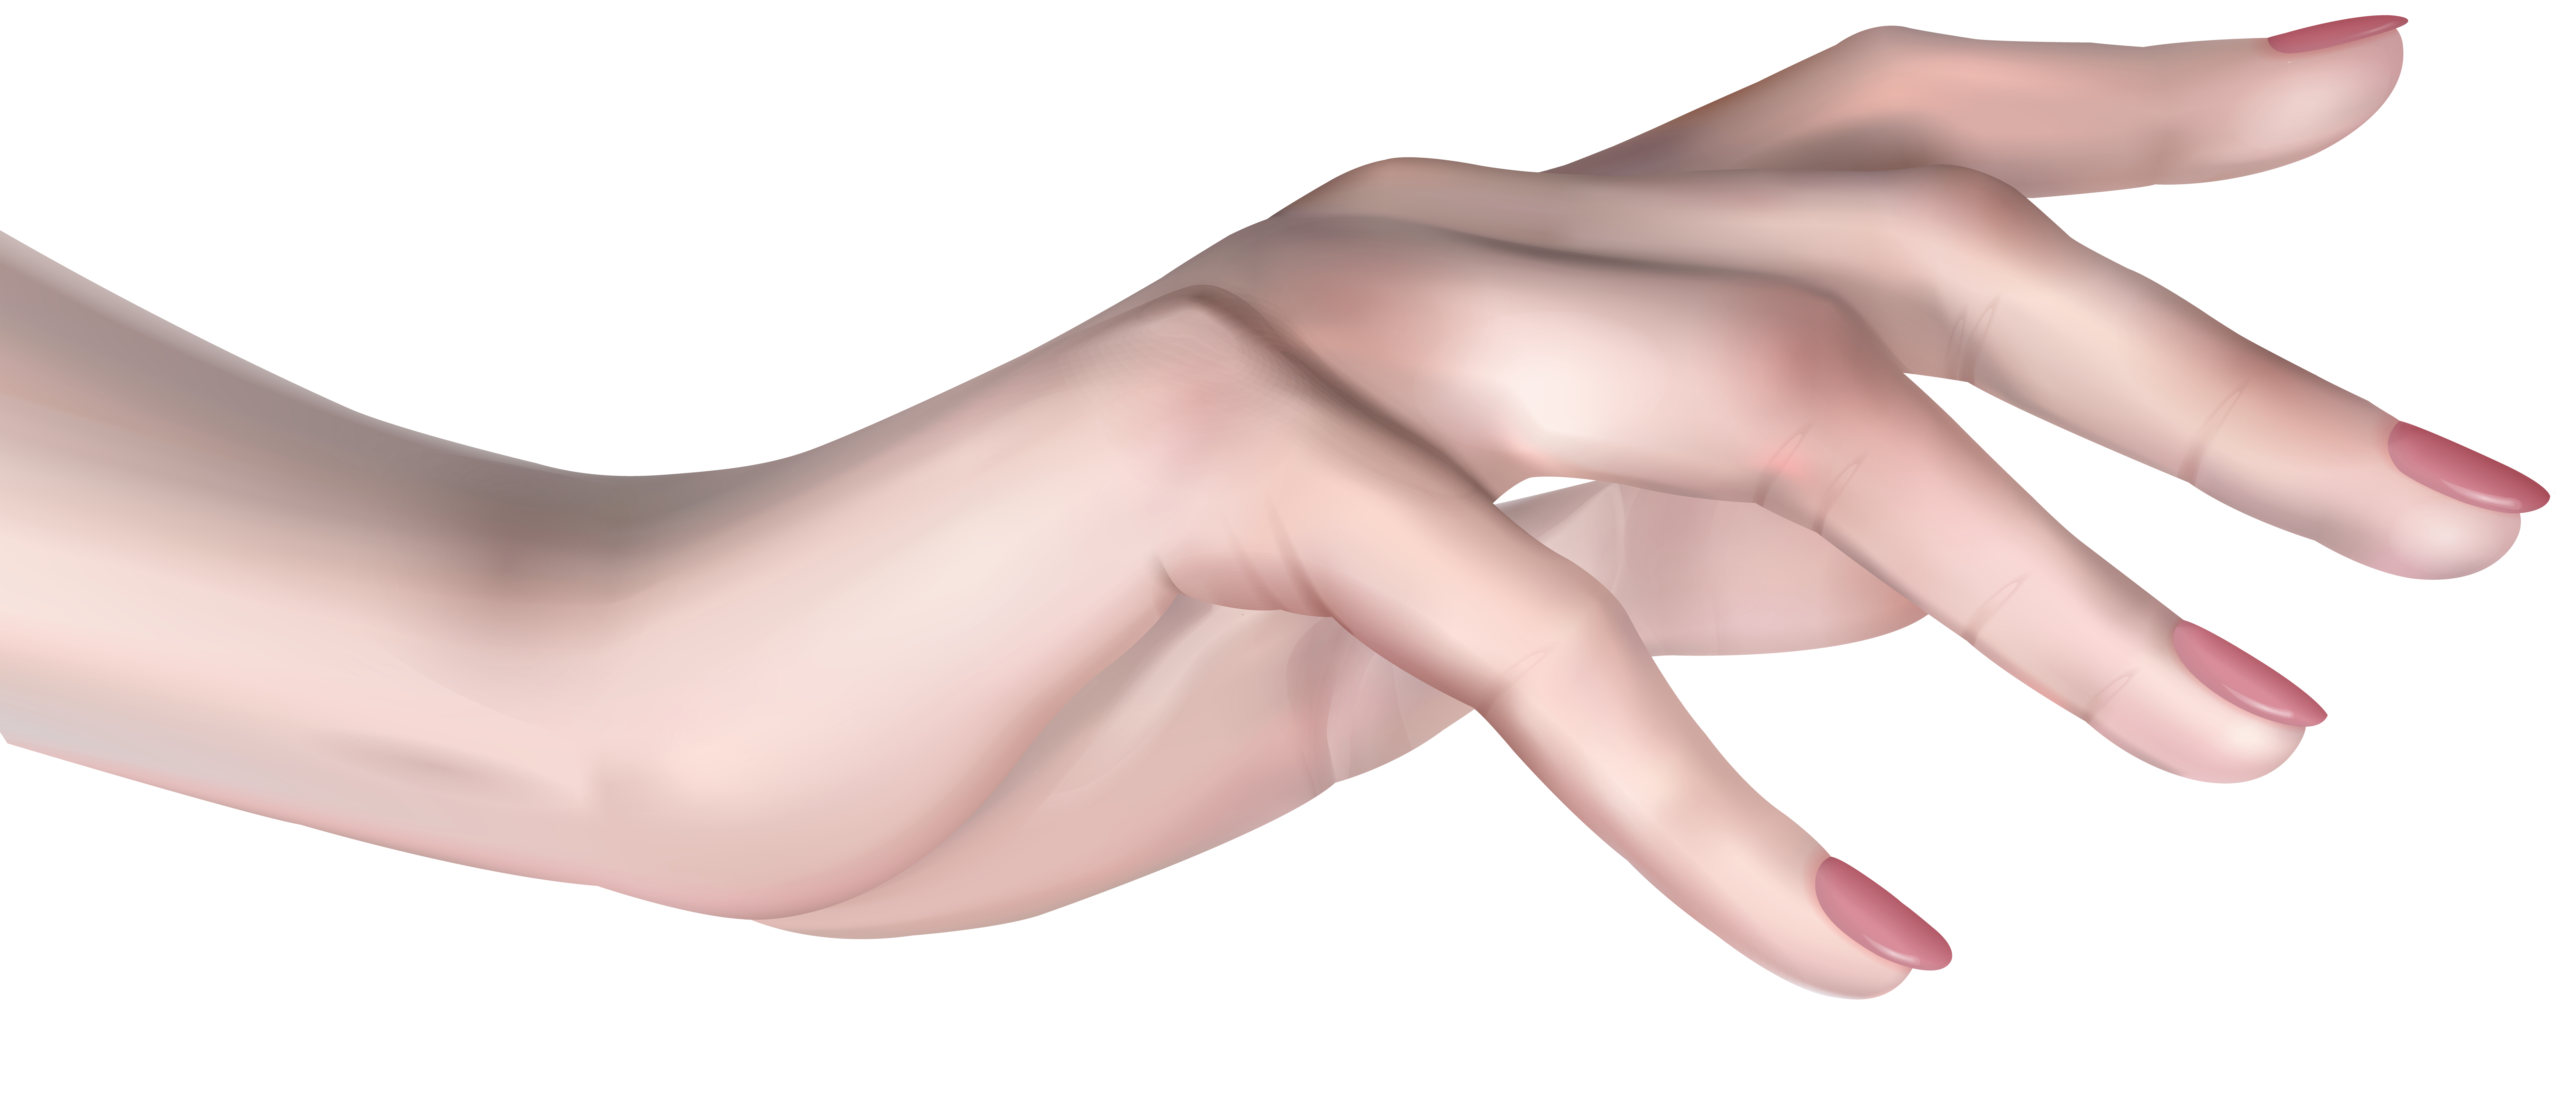 Nail clipart female hand Image High View Art PNG